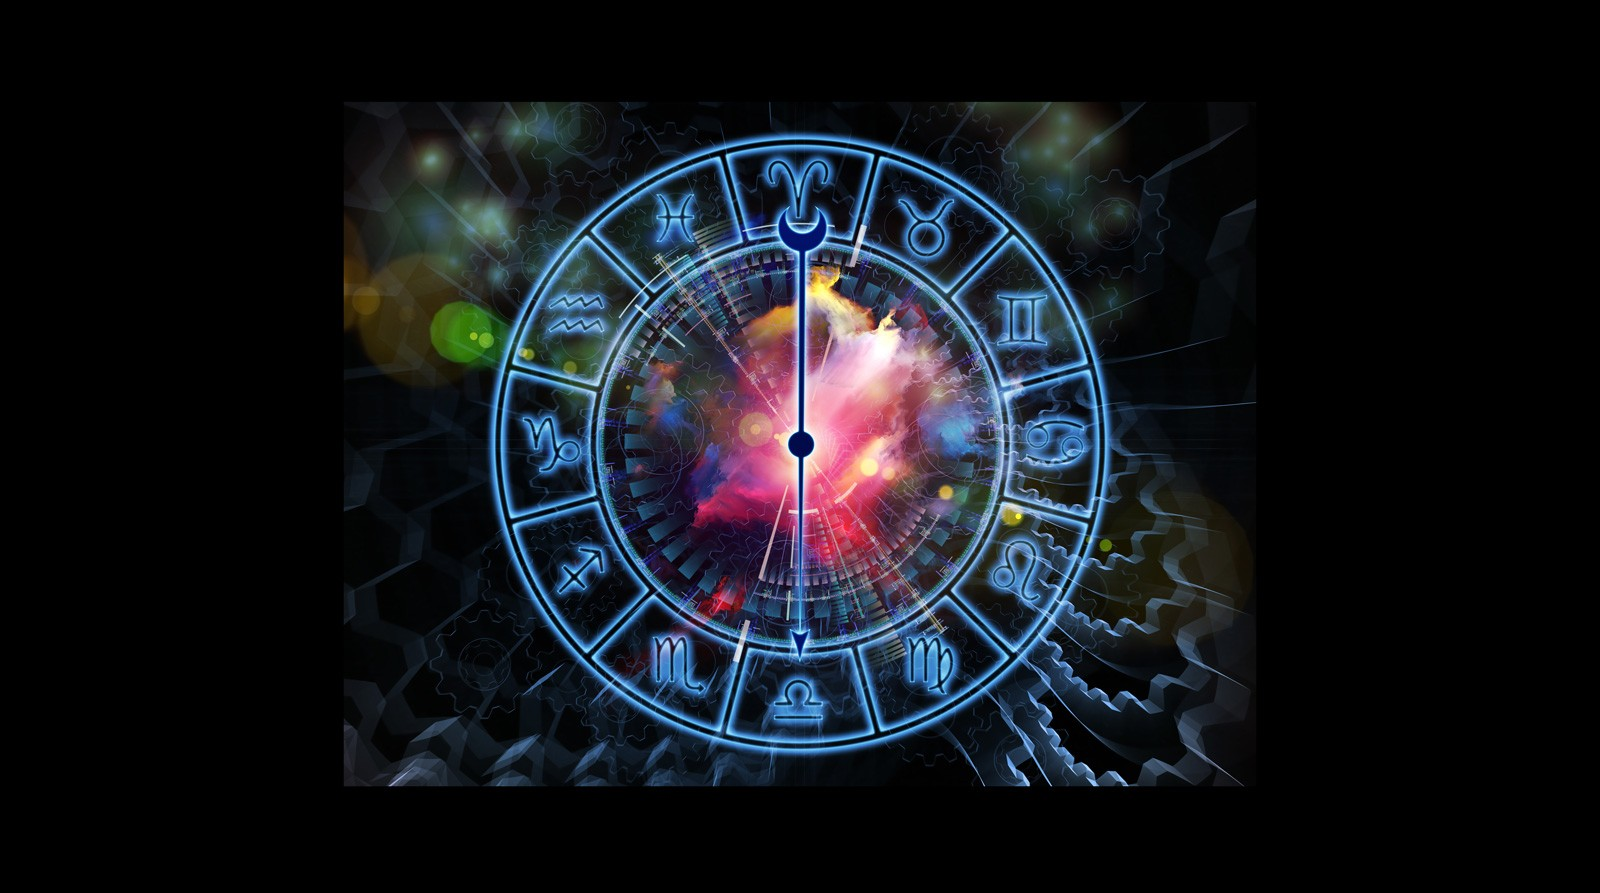 Astrological Meaning of Days of the Week on Whats-Your-Sign